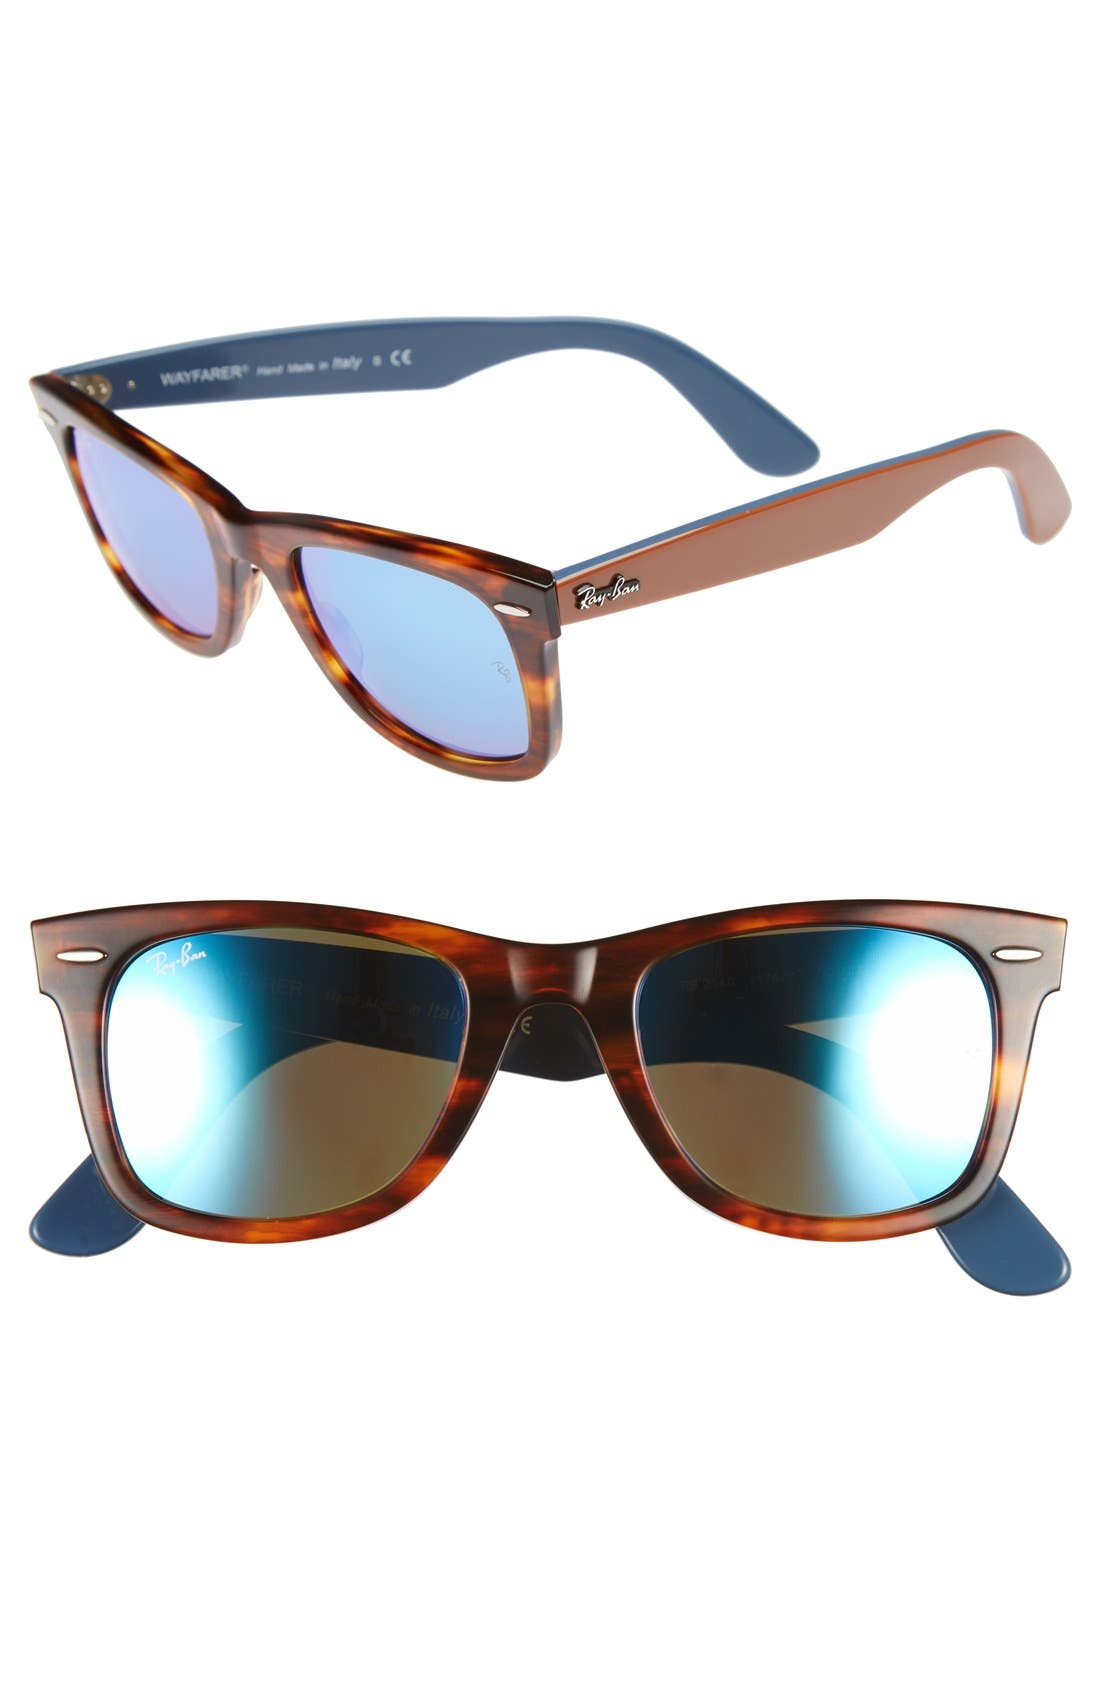 Main Image - Ray-Ban Cosmo Collection 'Classic Wayfarer' 50mm Sunglasses